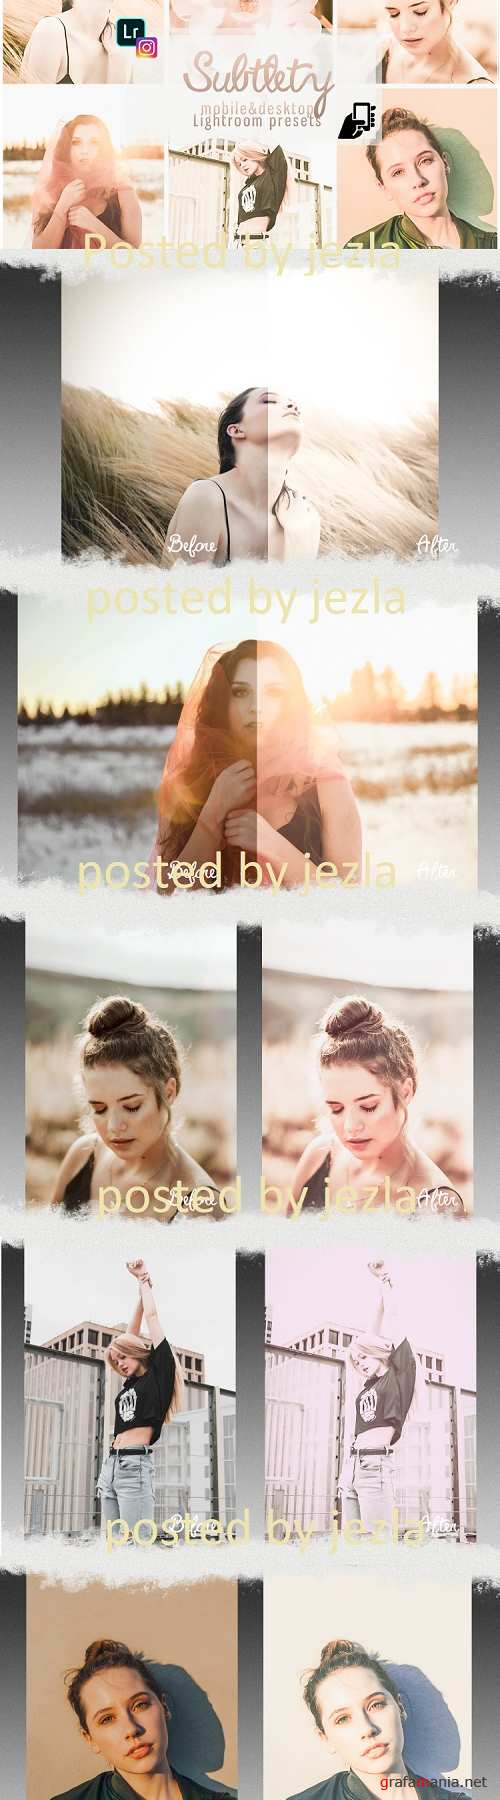 Subtlety presets for mobile and PC photo filter, photo effect - 250729